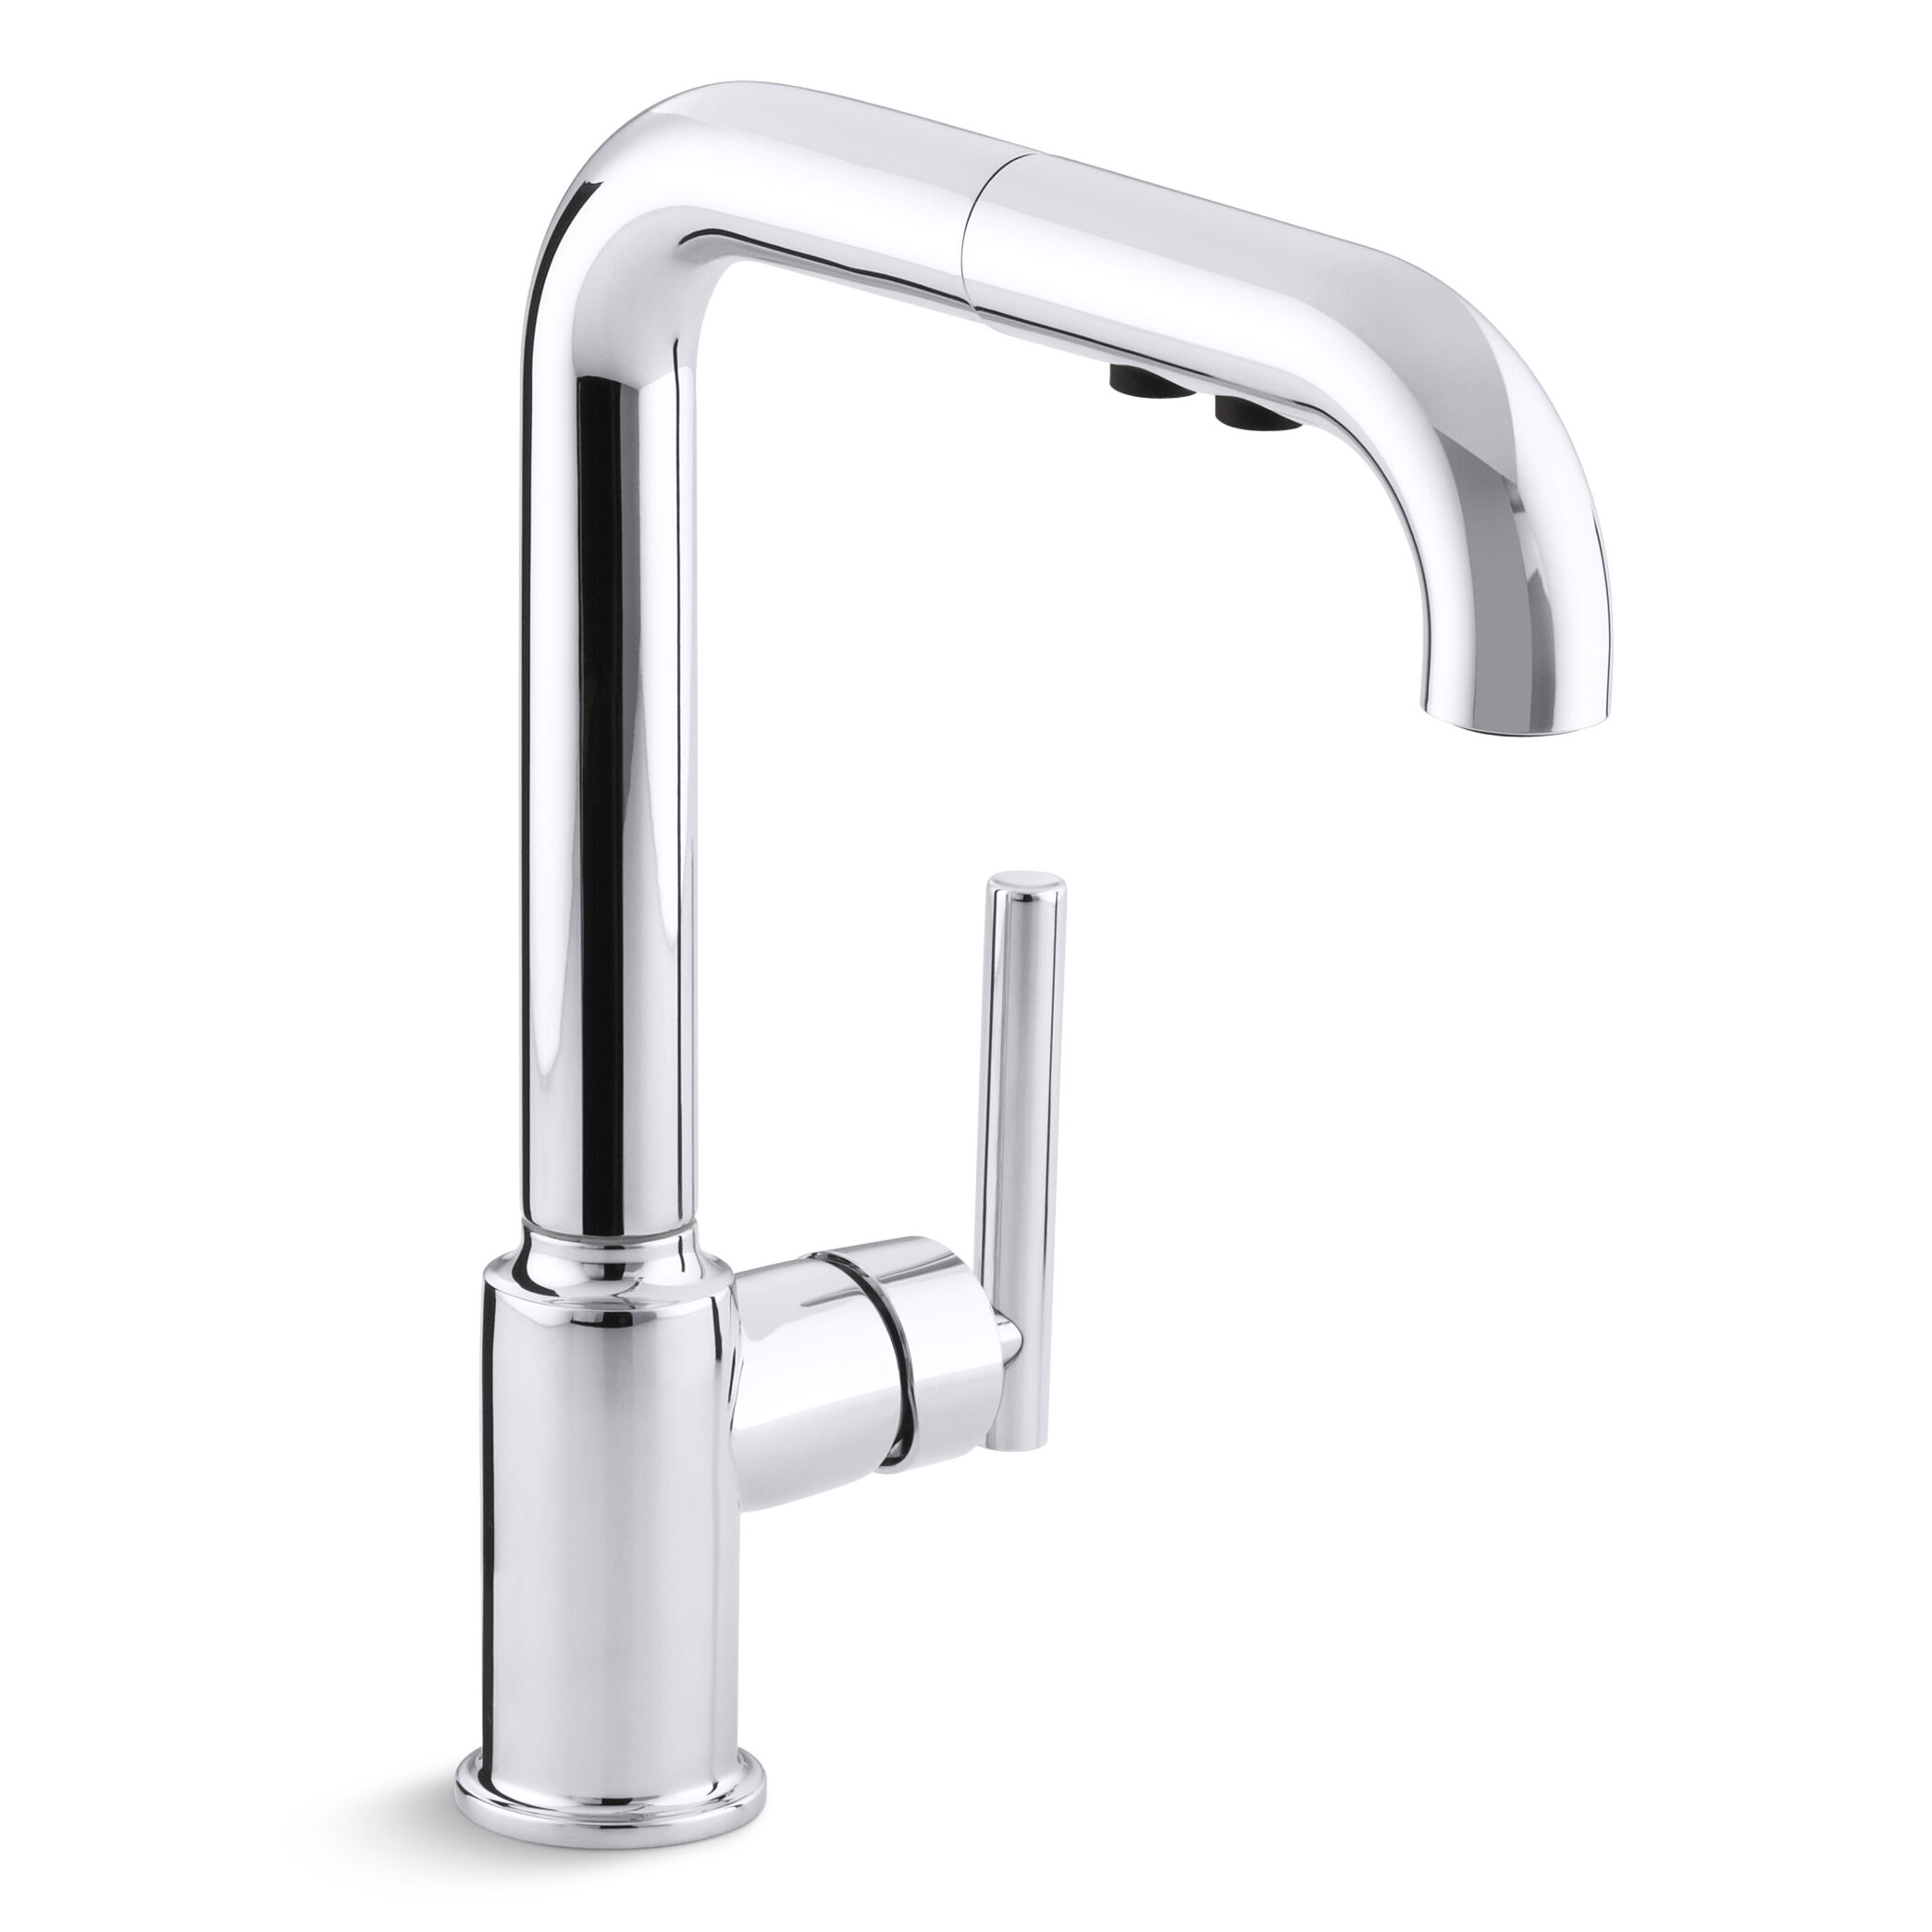 K 7505 BL CP SN Kohler Purist Single Hole Kitchen Sink Faucet with